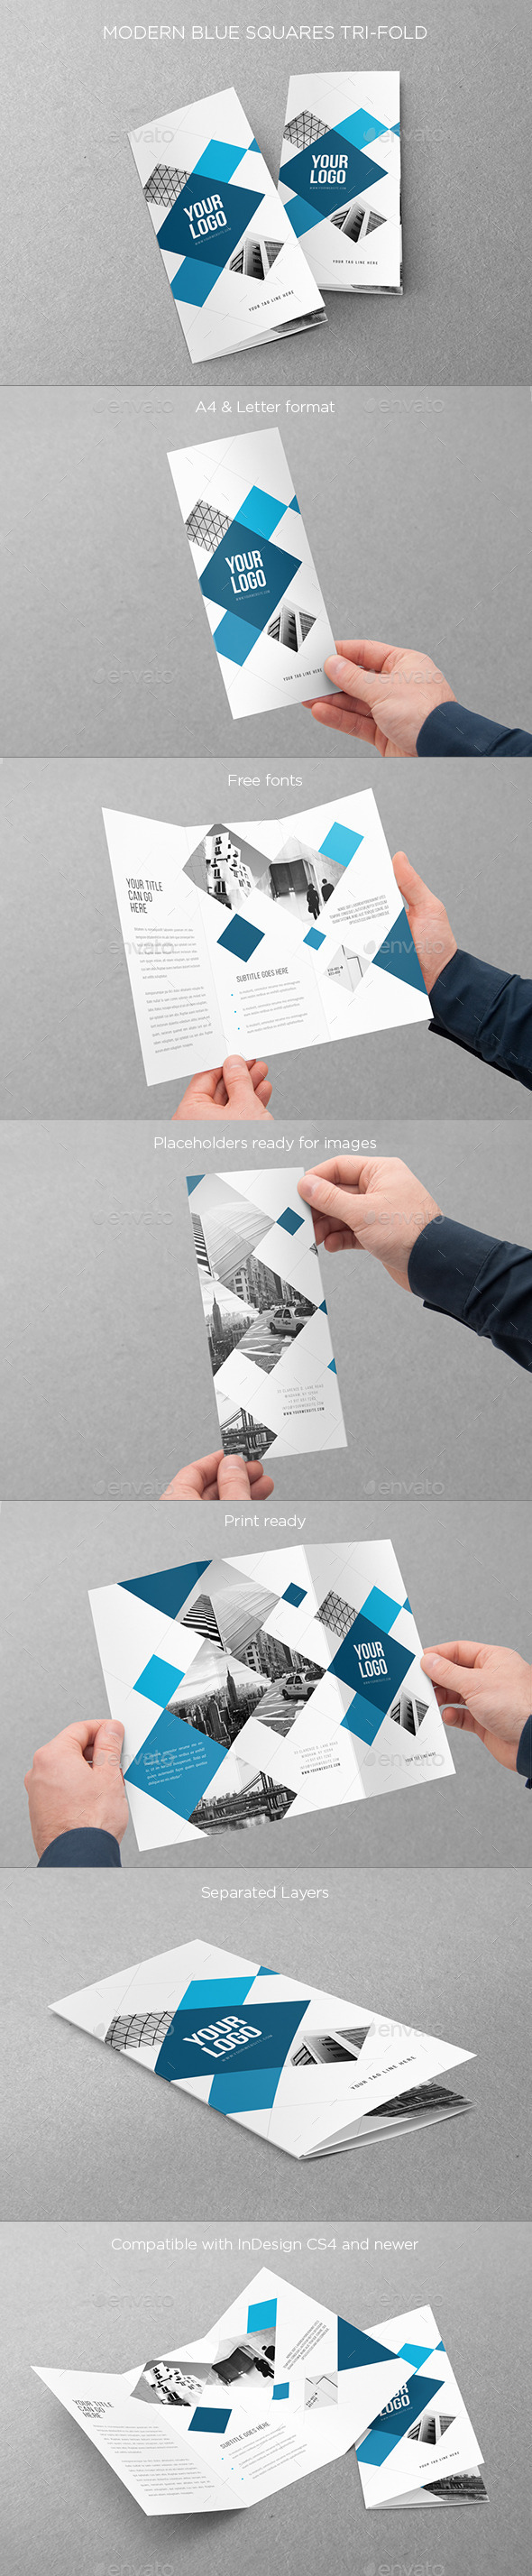 GraphicRiver Modern Blue Squares Trifold 11066694